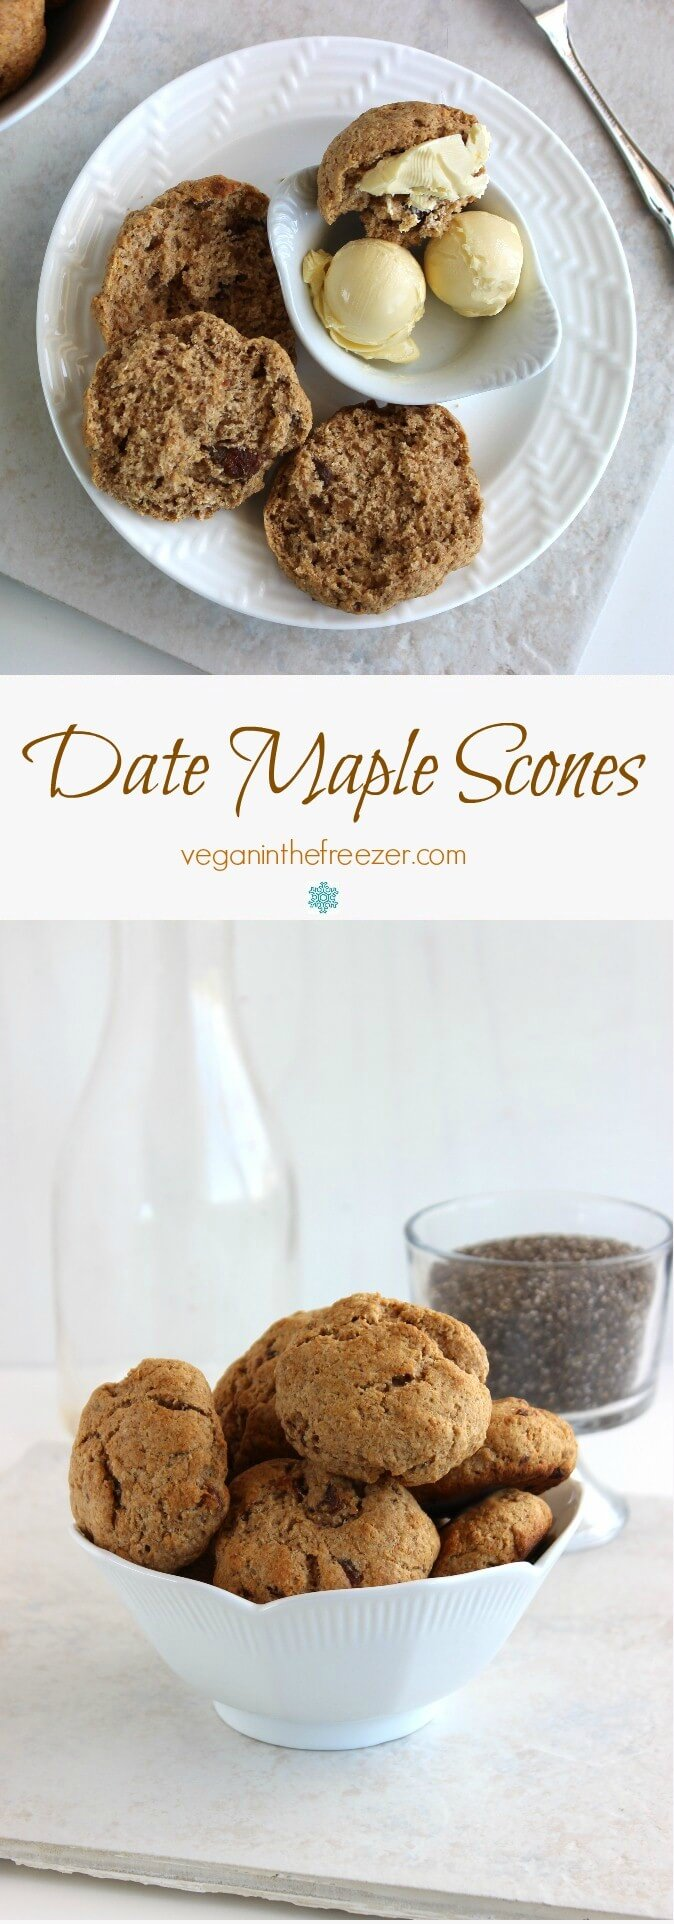 Date Maple Scones are a comfort food with deep rich flavors. Tender and moist inside and they will melt in your mouth. Easy, tasty, perfect!